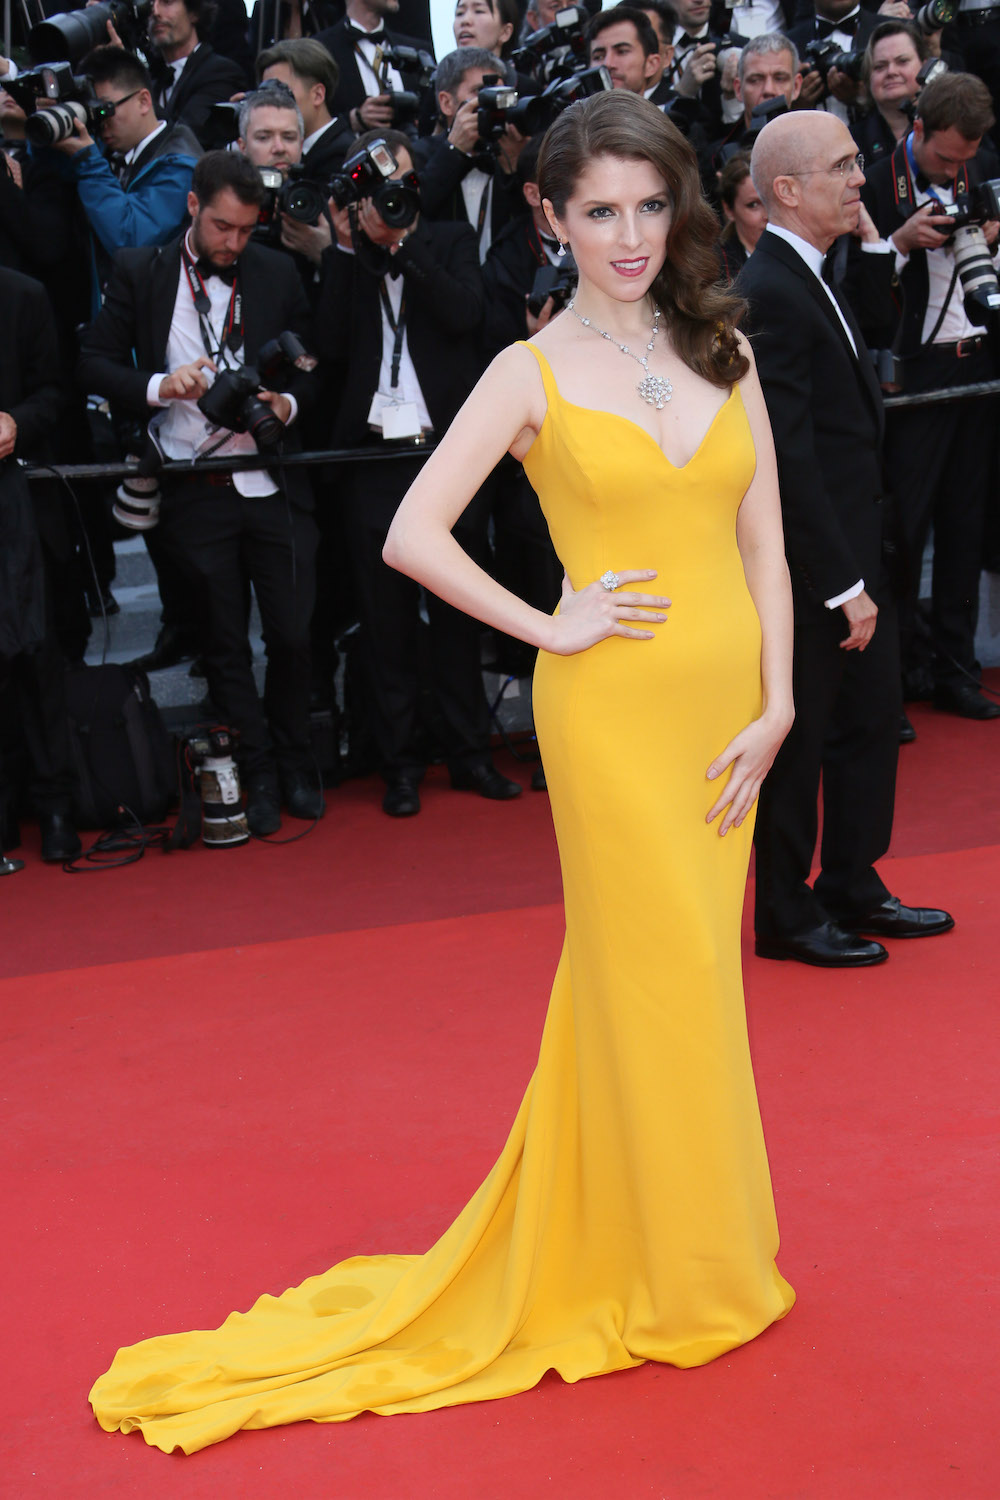 Gorgeous Yellow Dresses Are Taking Over The Cannes Red Carpet